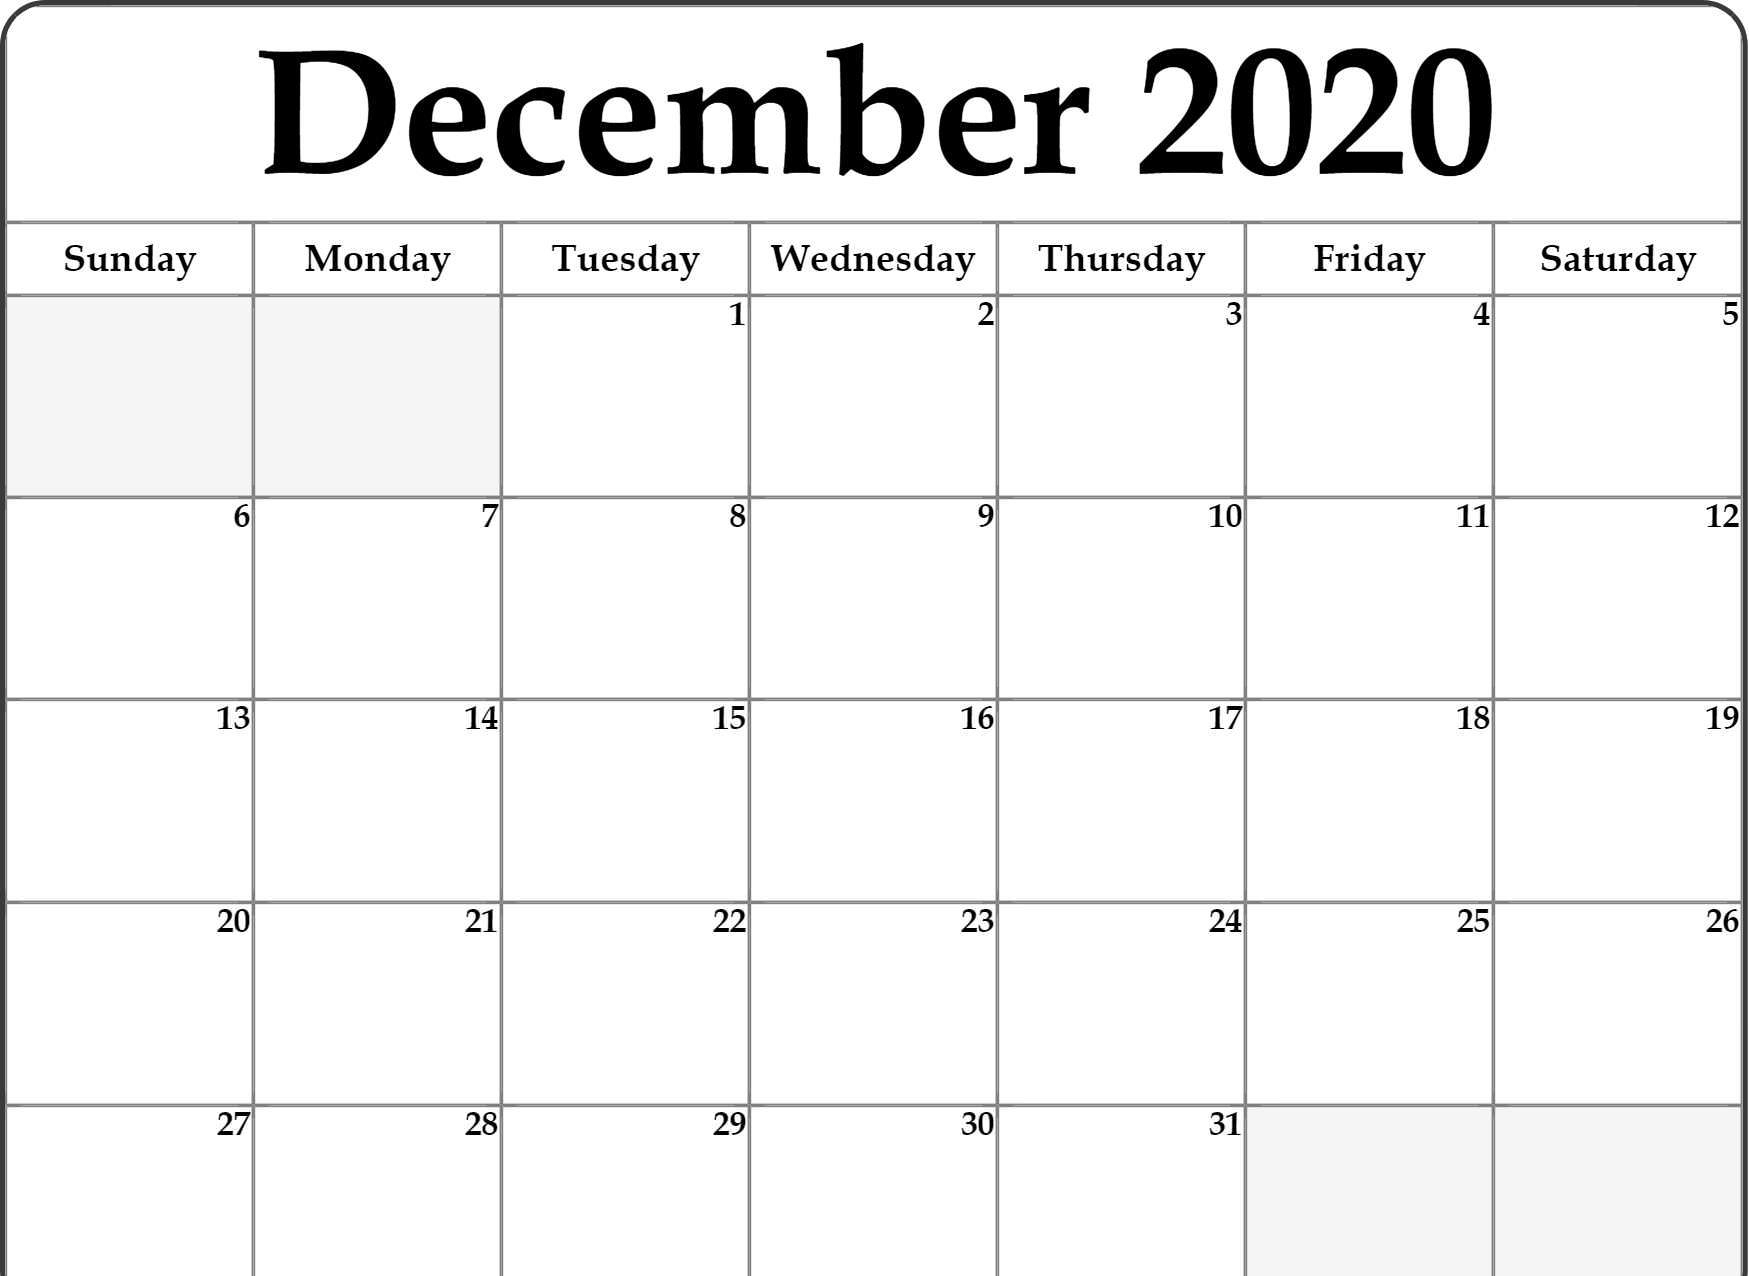 December 2020 Calendar Template Word, Pdf, Excel Format